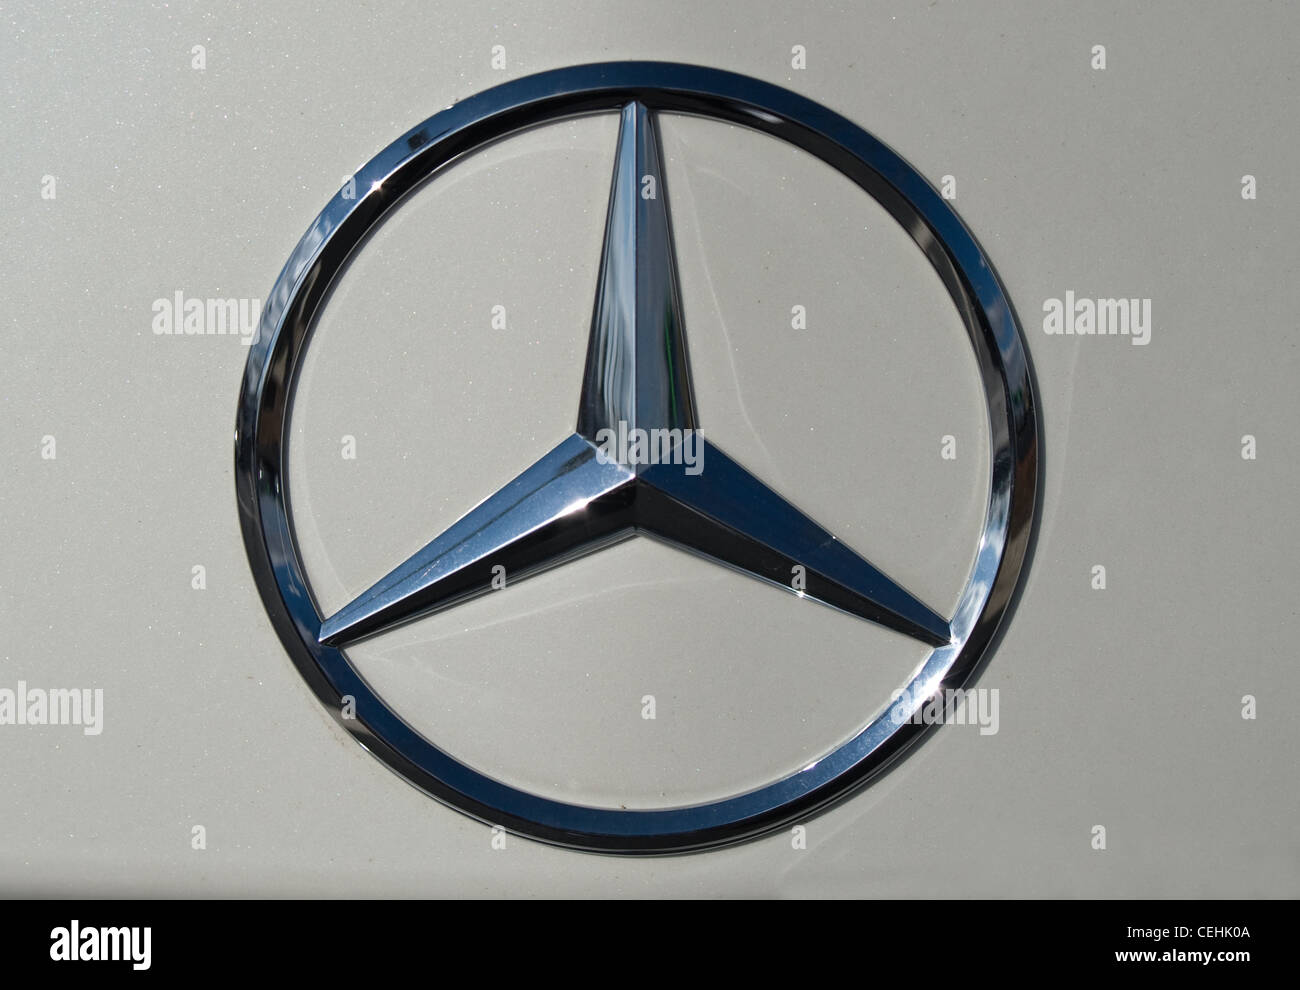 Mercedes Benz Symbol Logo On The Front Of The Car Stock Photo